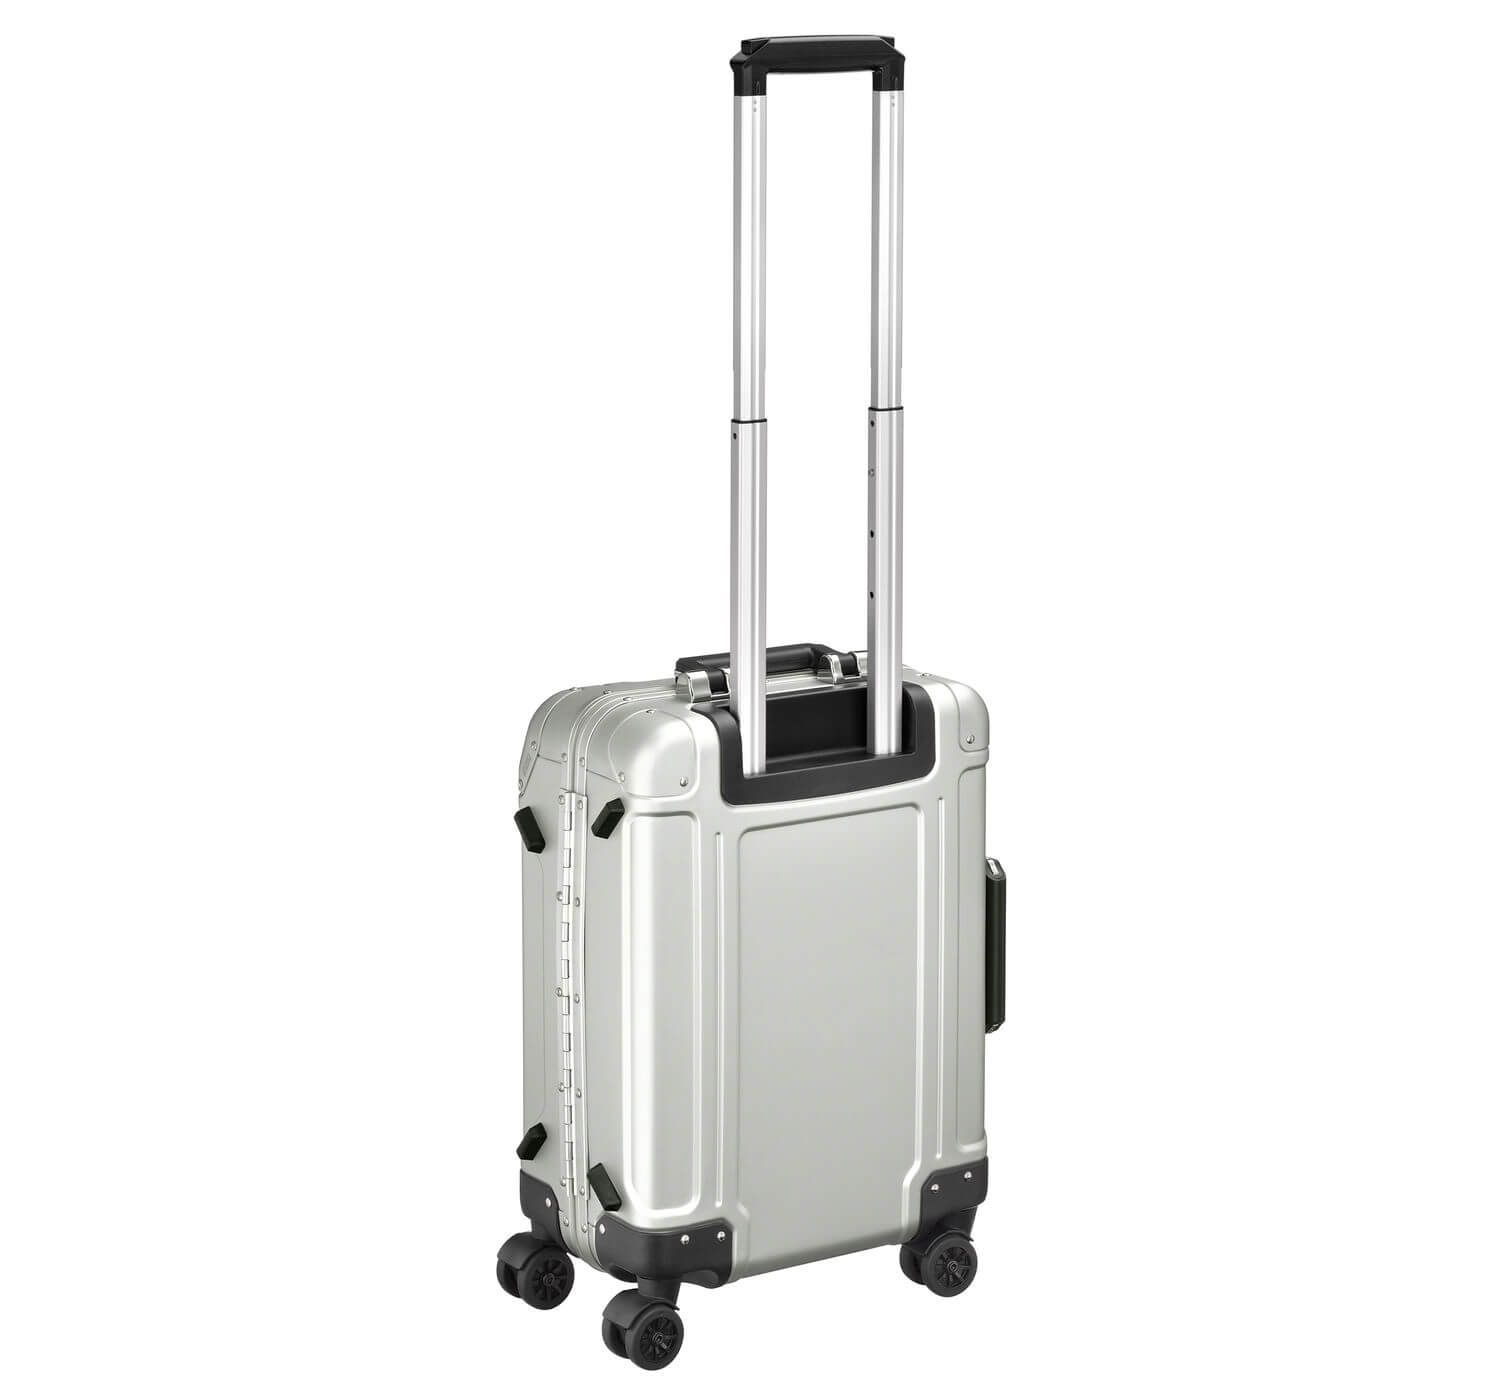 Geo Aluminum 2.0 - Carry-on 4-Wheel Spinner Luggage - фото 4